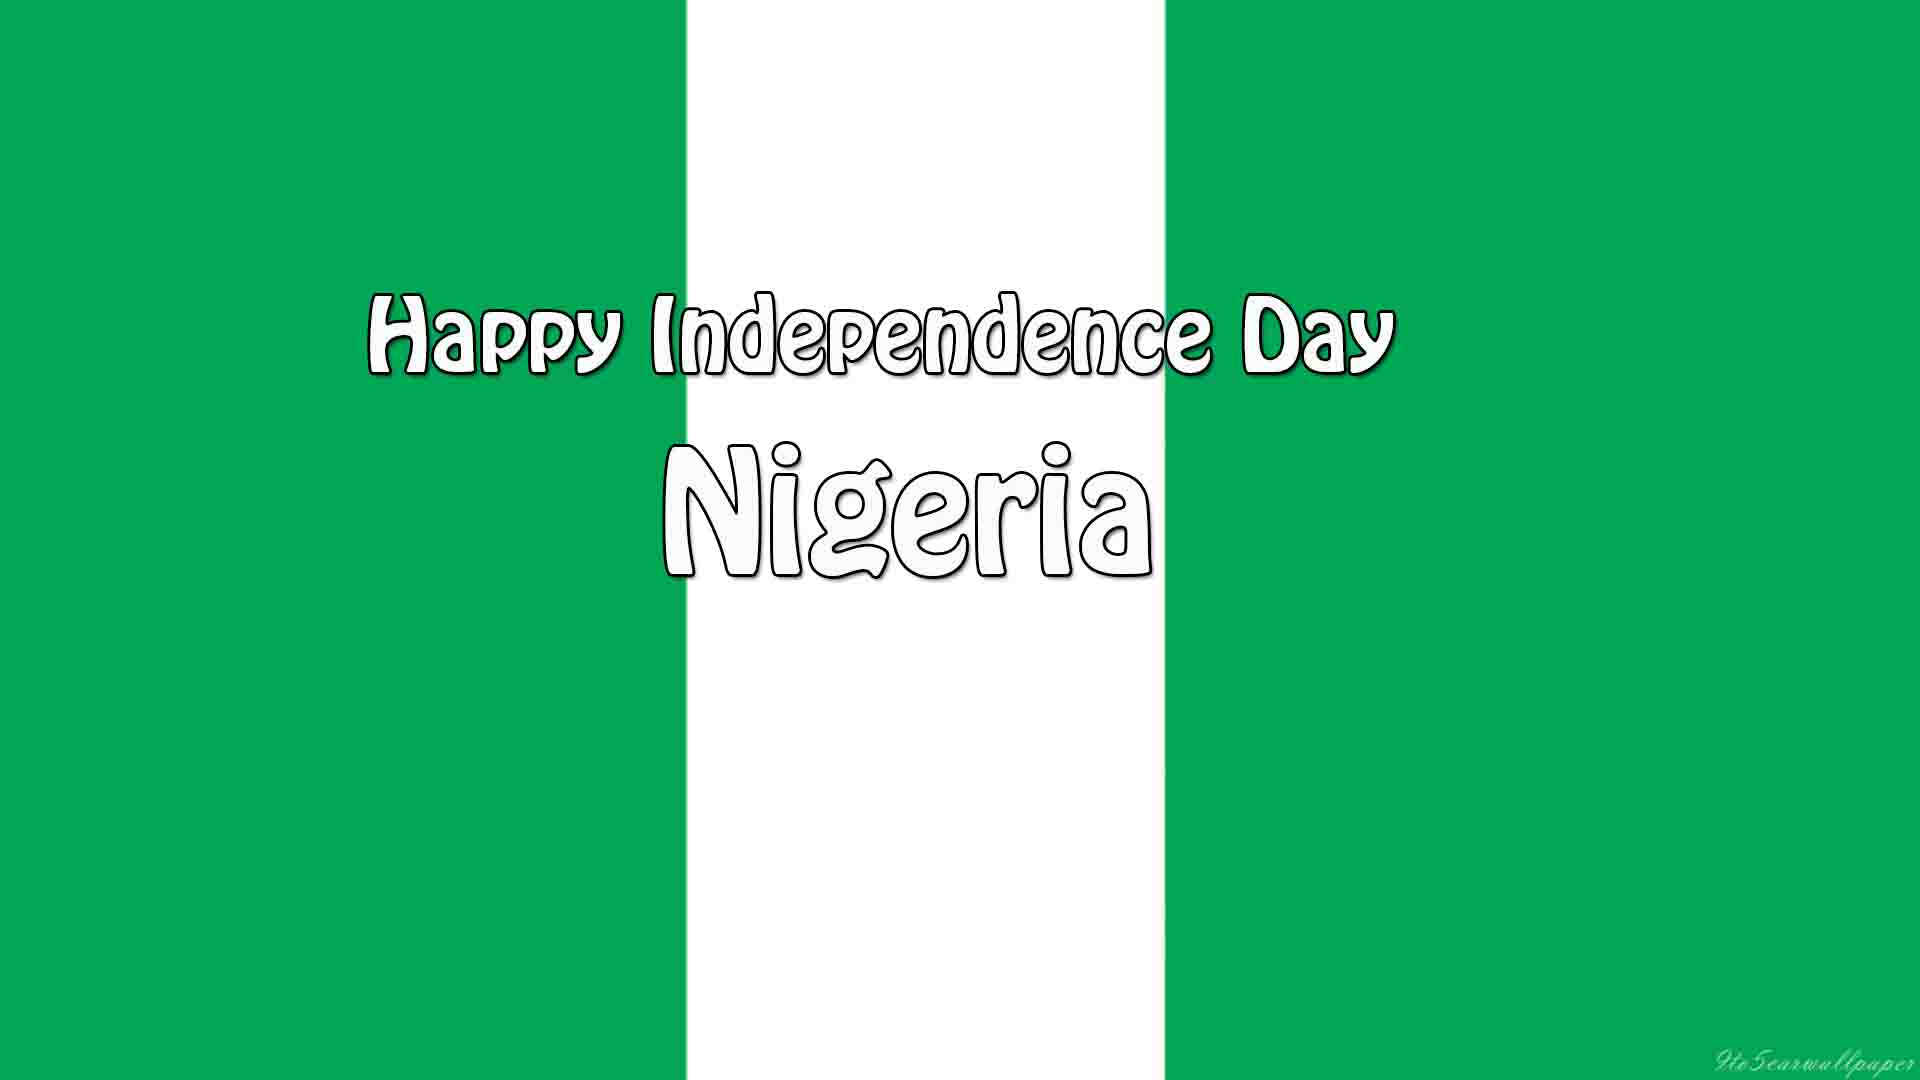 Independence Day Nigeria Flag Images And Wallpapers 2017 My Site